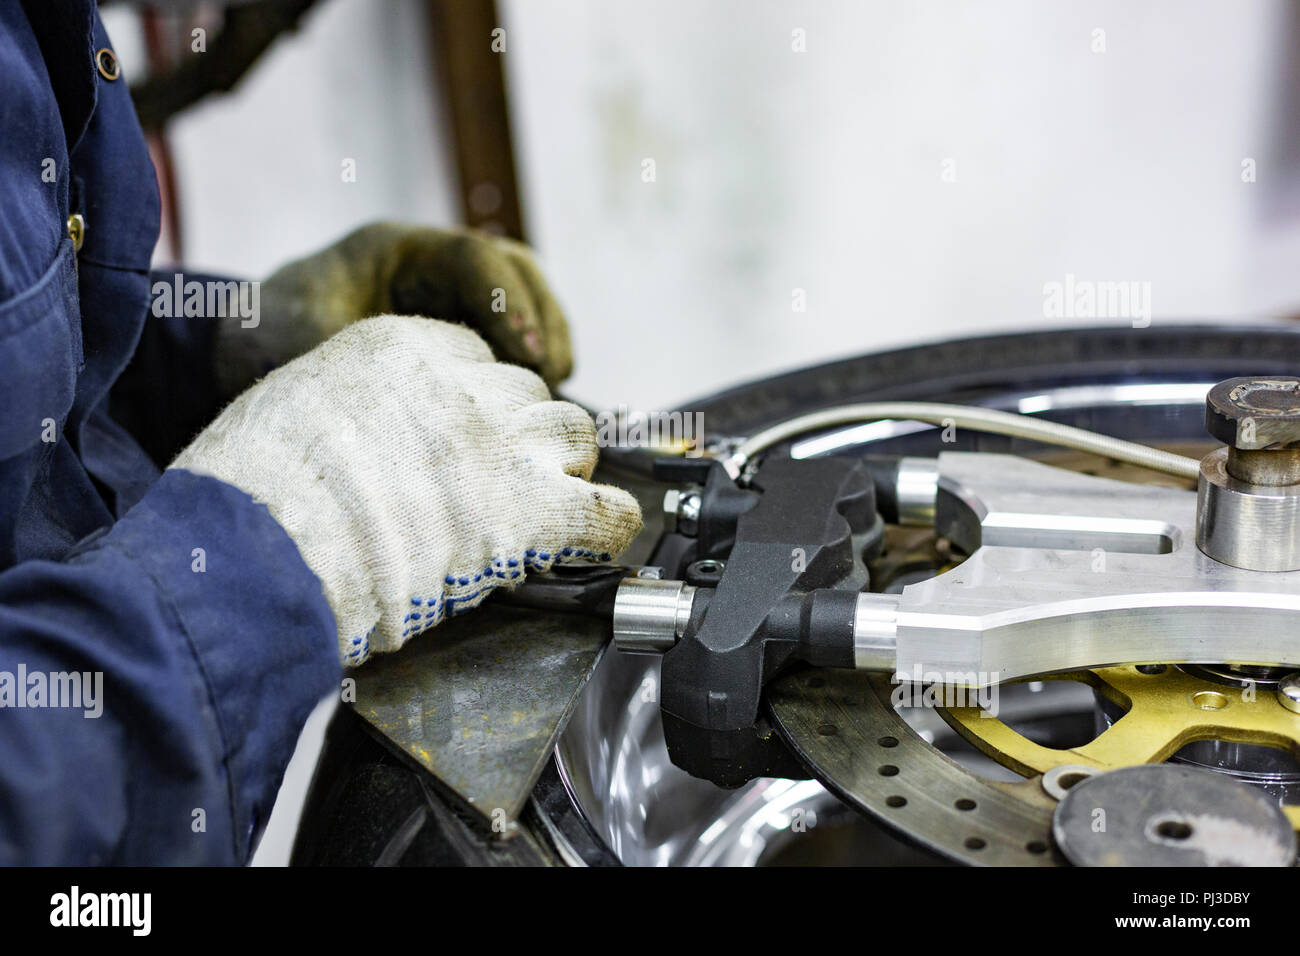 Professional car mechanic working in auto repair service - Stock Image